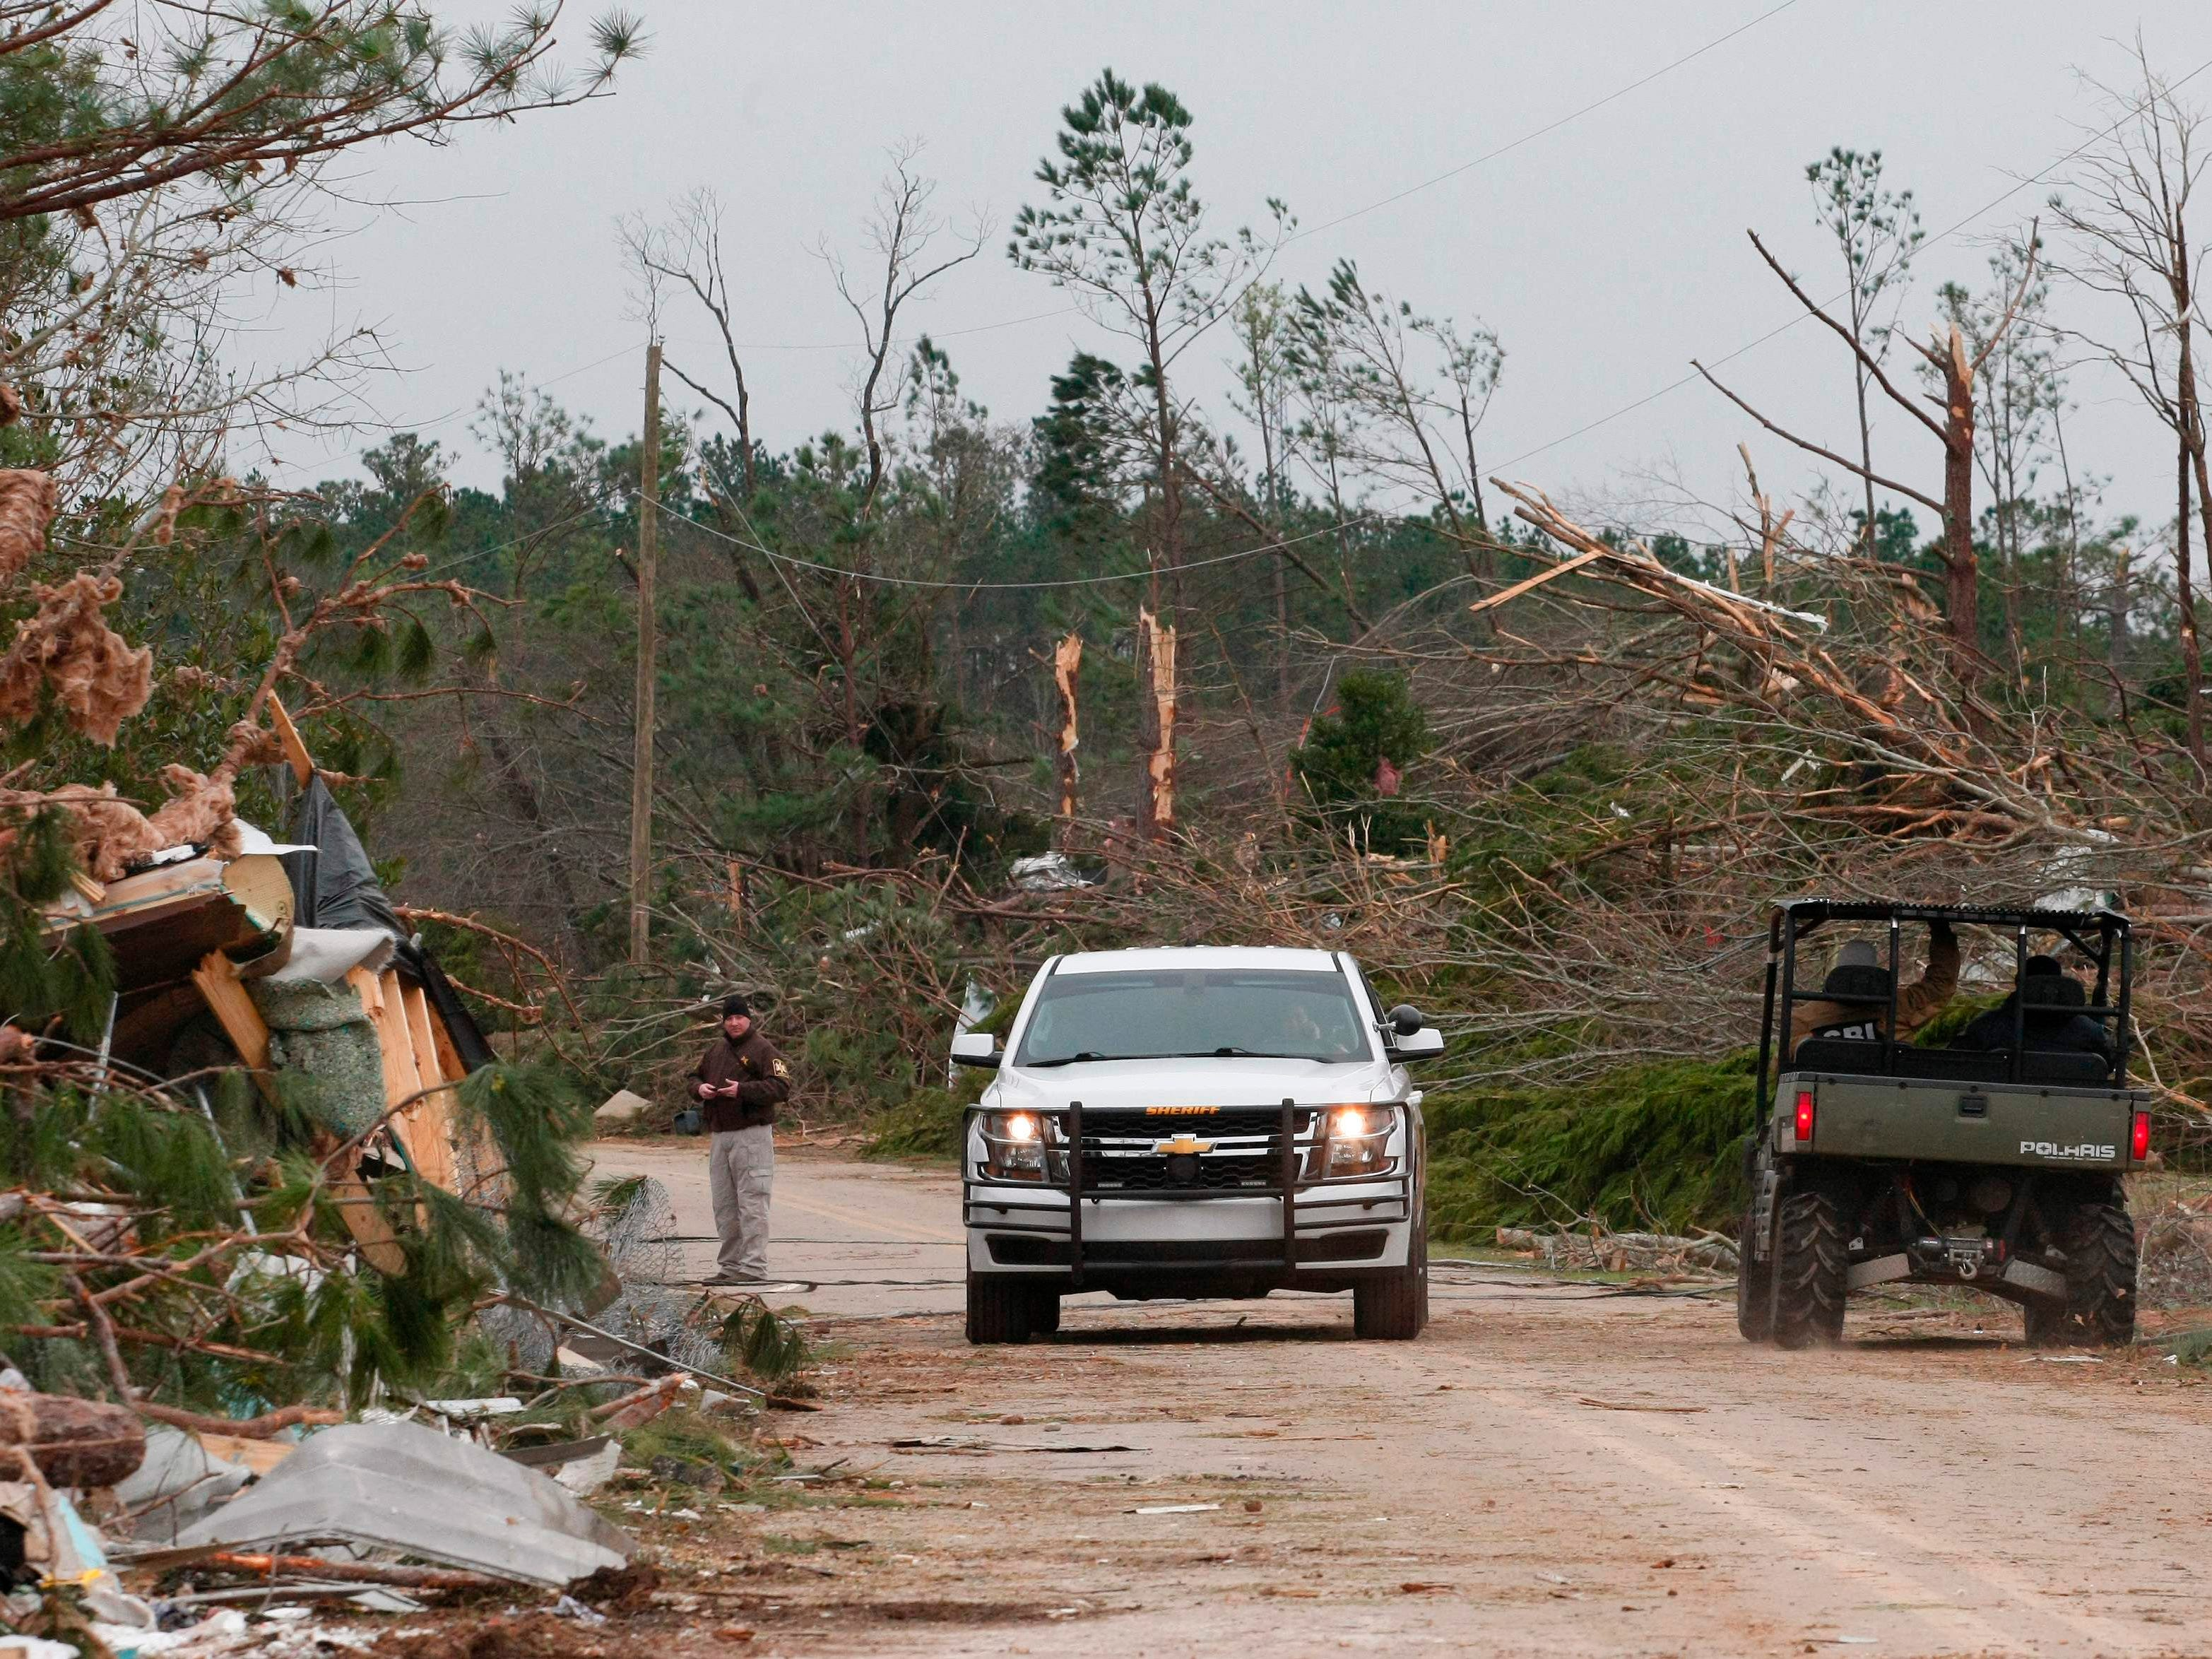 """Damage from a tornado which killed at least 23 people is seen as Lee county deputies secure the scene in Beauregard, Alabama on March 4, 2019.Rescuers in Alabama were set to resume search operations Monday after at least two tornadoes killed 23 people, uprooted trees and caused """"catastrophic"""" damage to buildings and roads in the southern US state.""""The devastation is incredible,"""" Lee County Sheriff Jay Jones told the local CBS affiliate late Sunday.""""I cannot recall at least in the last 50 years... a situation where we have had this loss of life that we experienced today."""""""